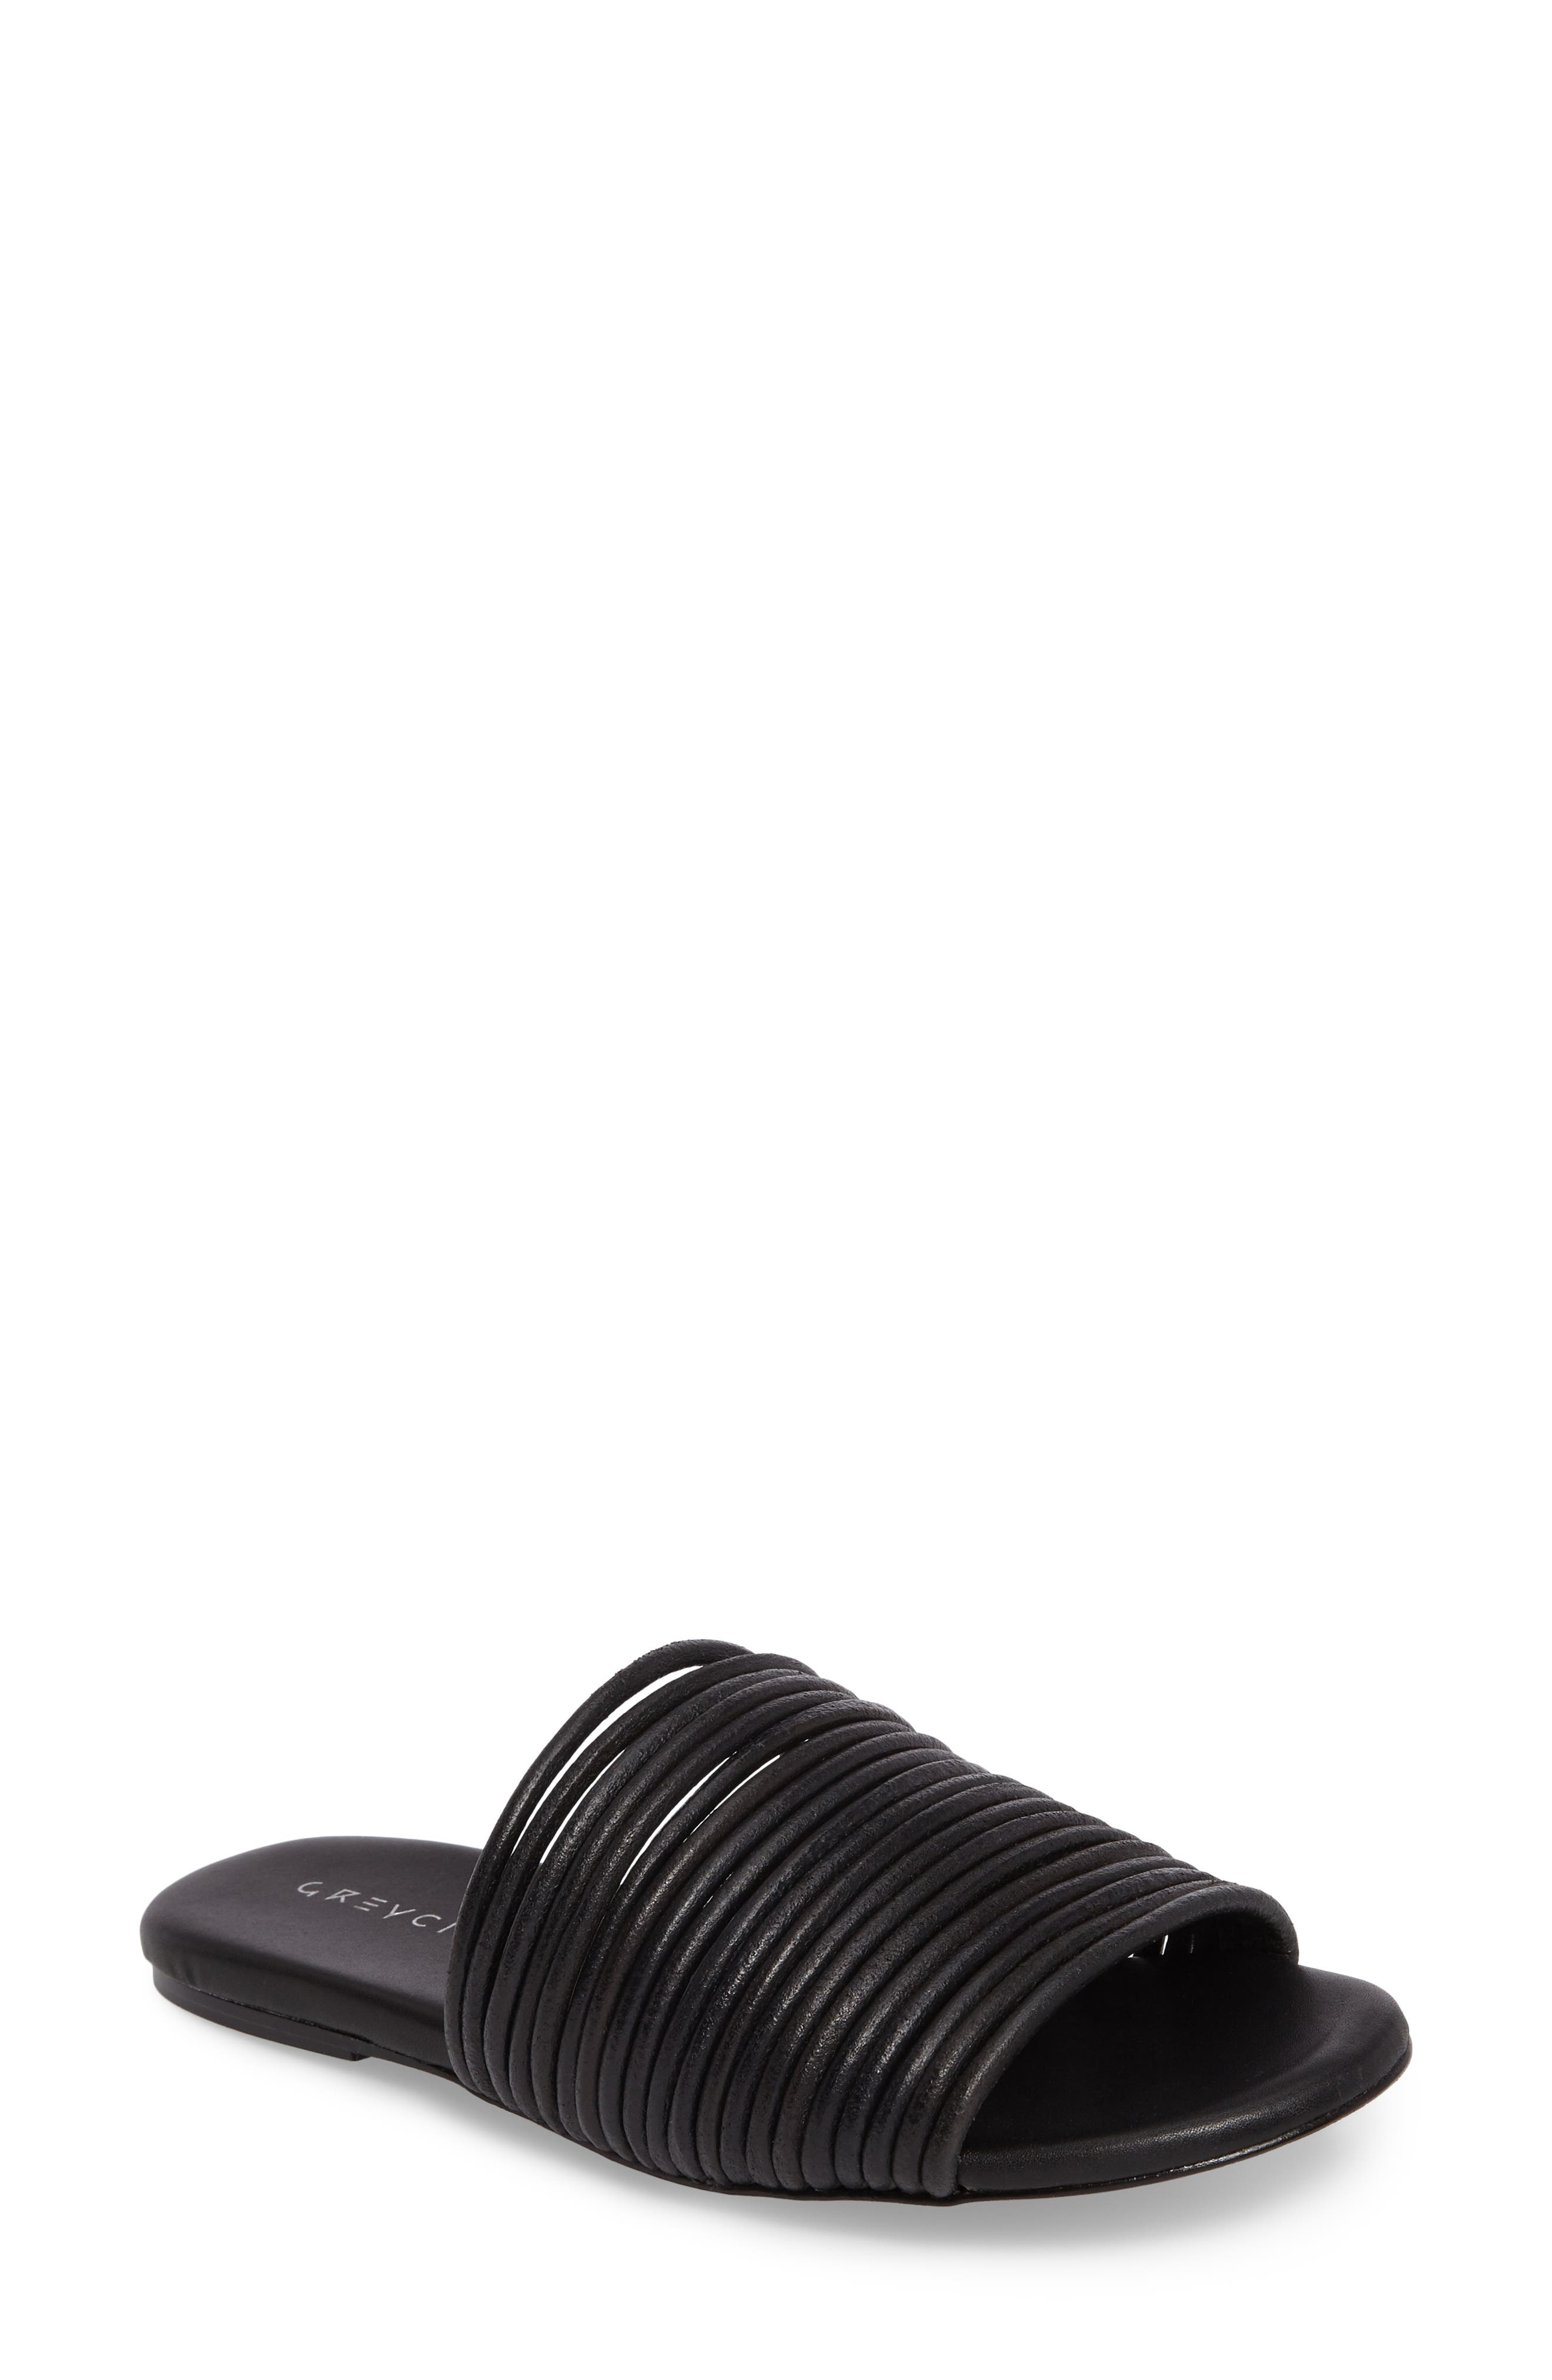 Nikki Corded Slide Sandal,                             Main thumbnail 1, color,                             Black